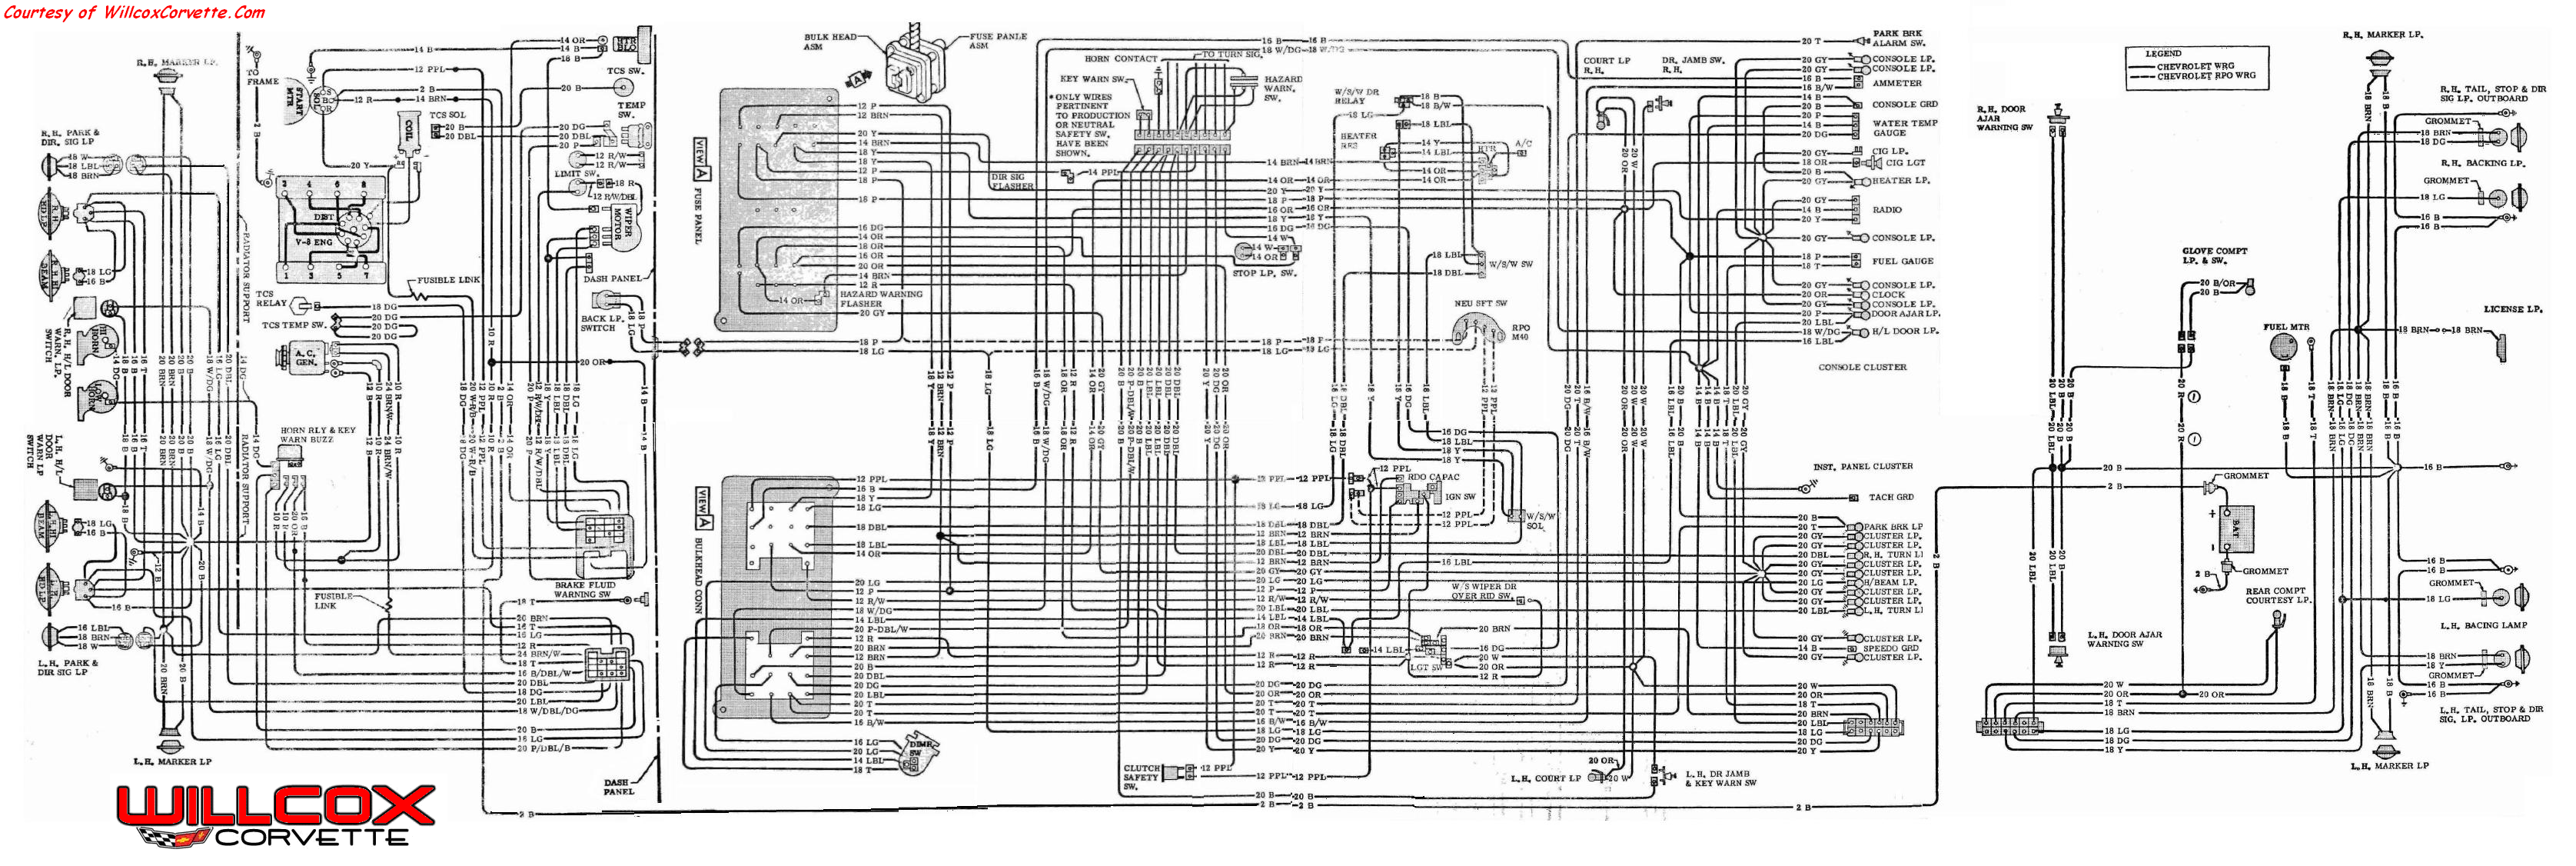 Corvette Wire Schematic Tracer on 1962 corvette wiring diagram